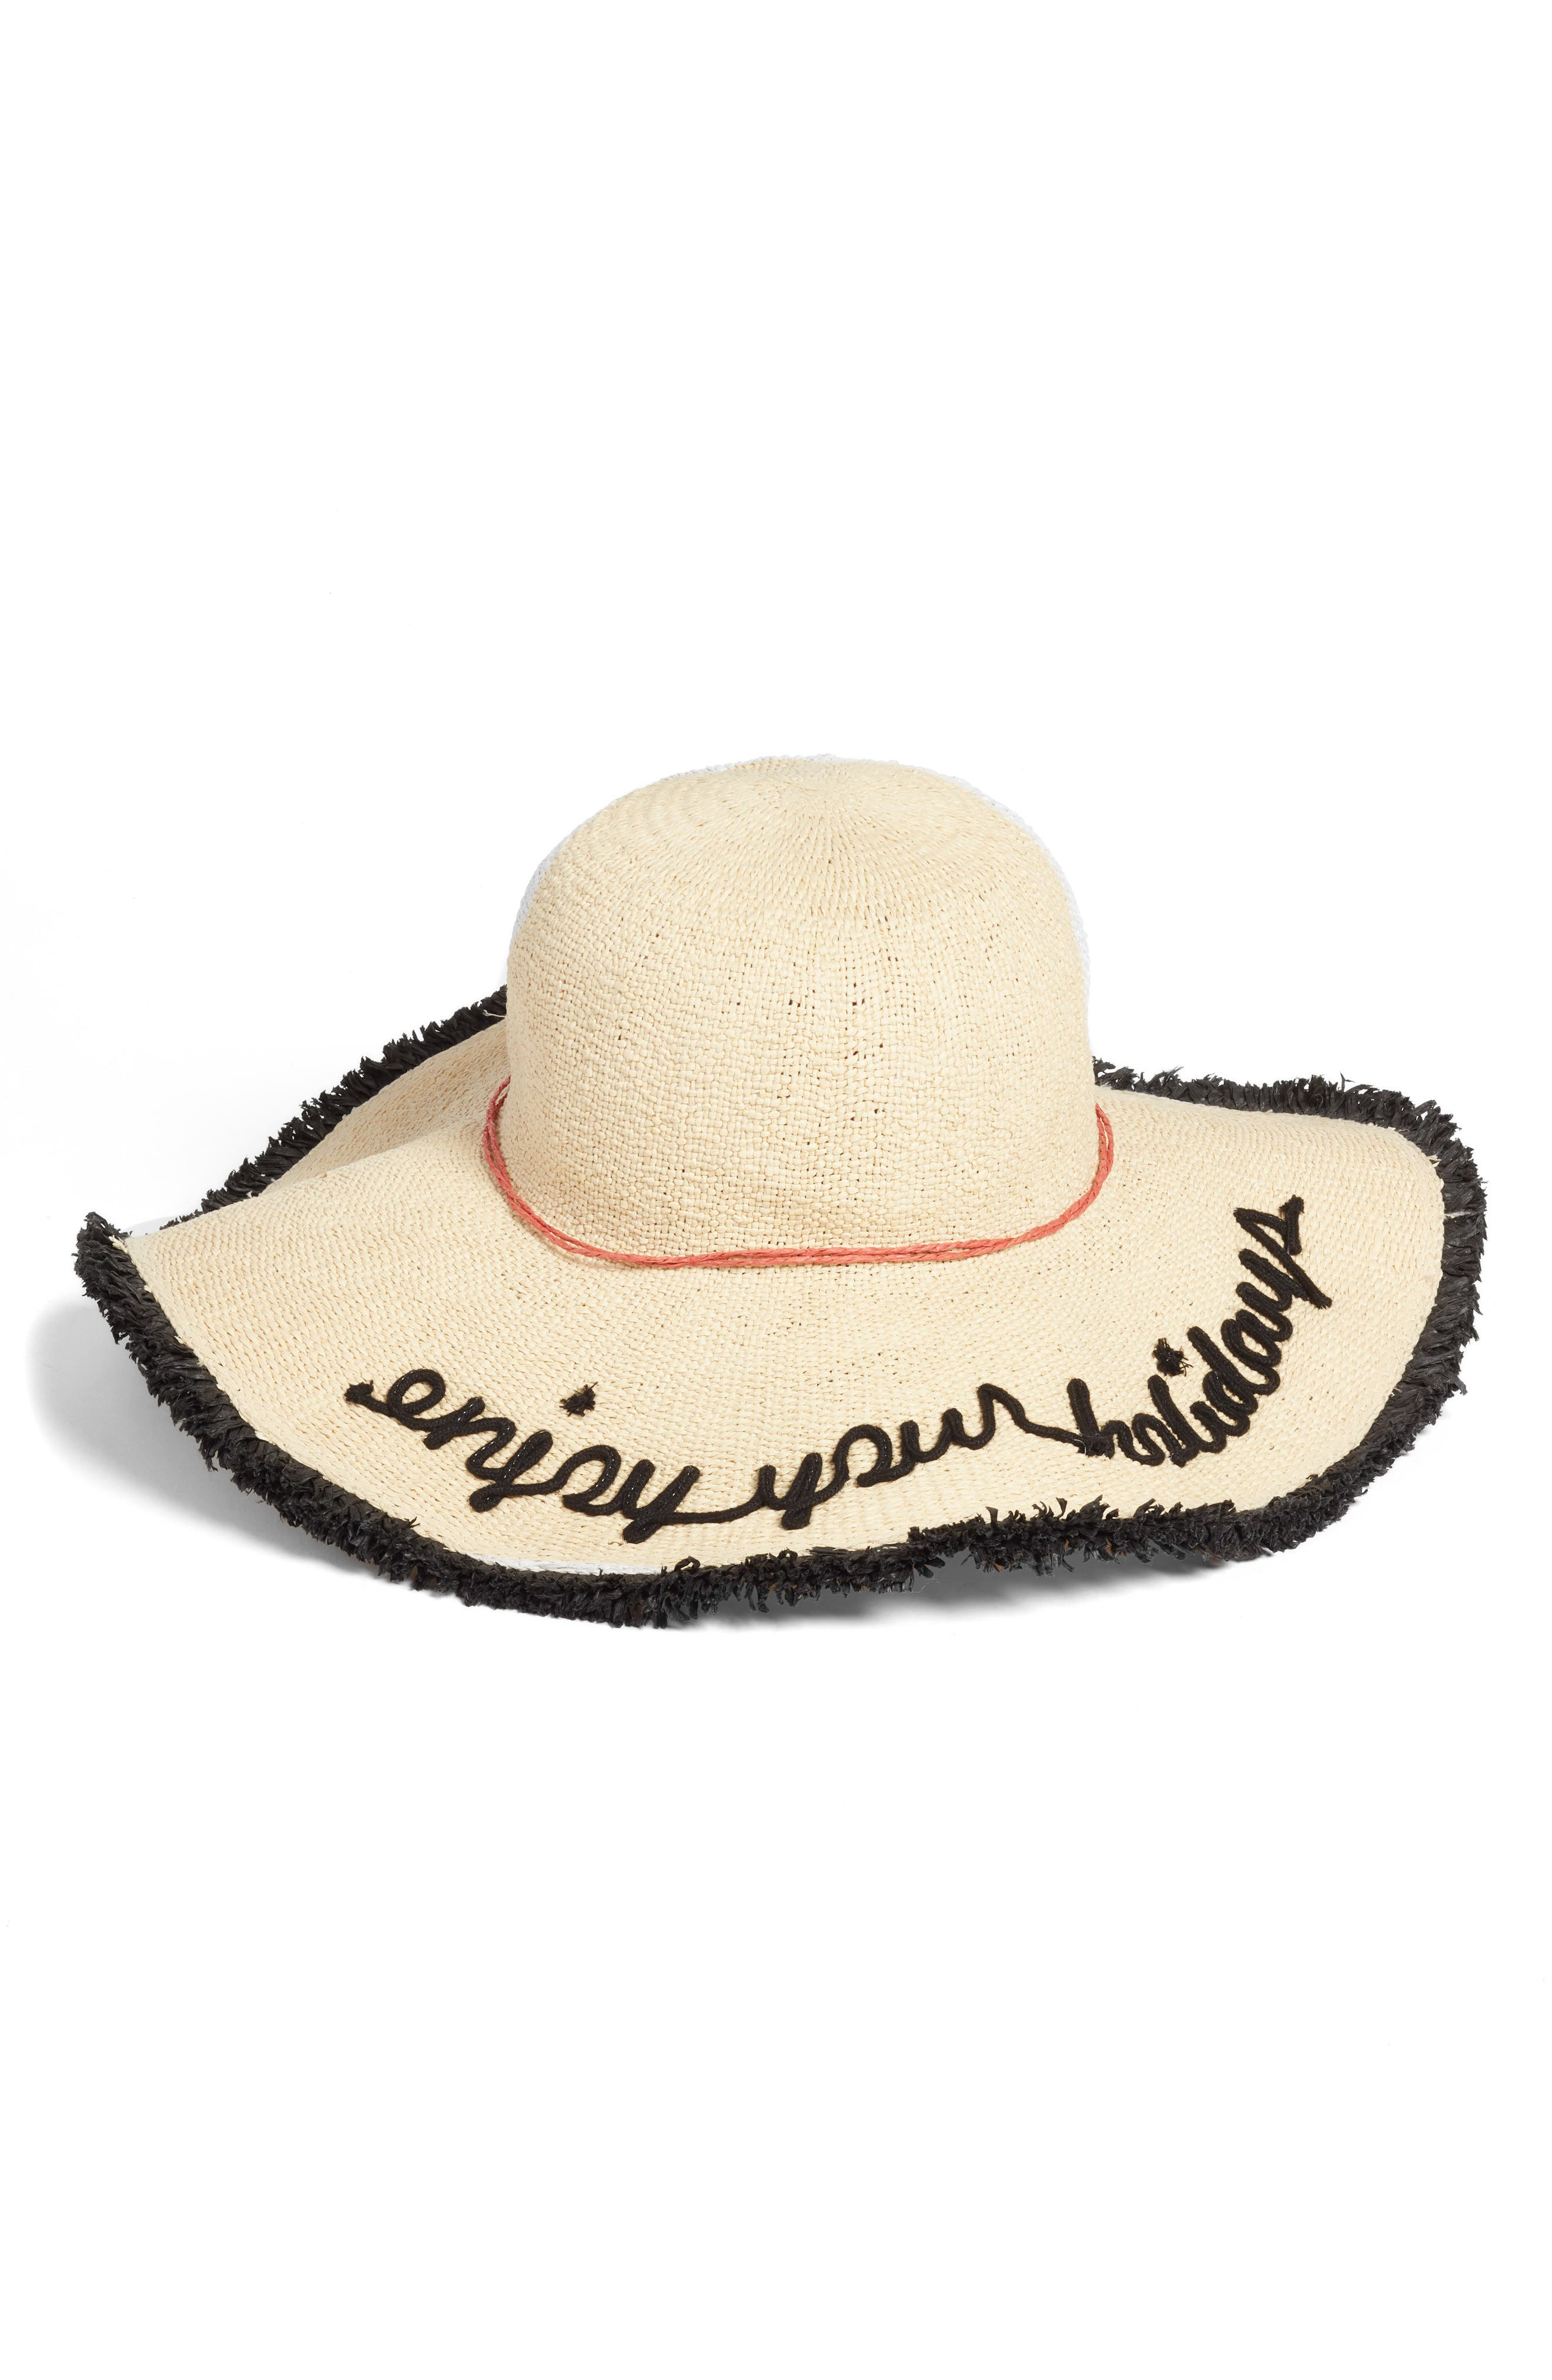 Embroidered Straw Sun Hat with Fringe,                             Main thumbnail 1, color,                             NATURAL